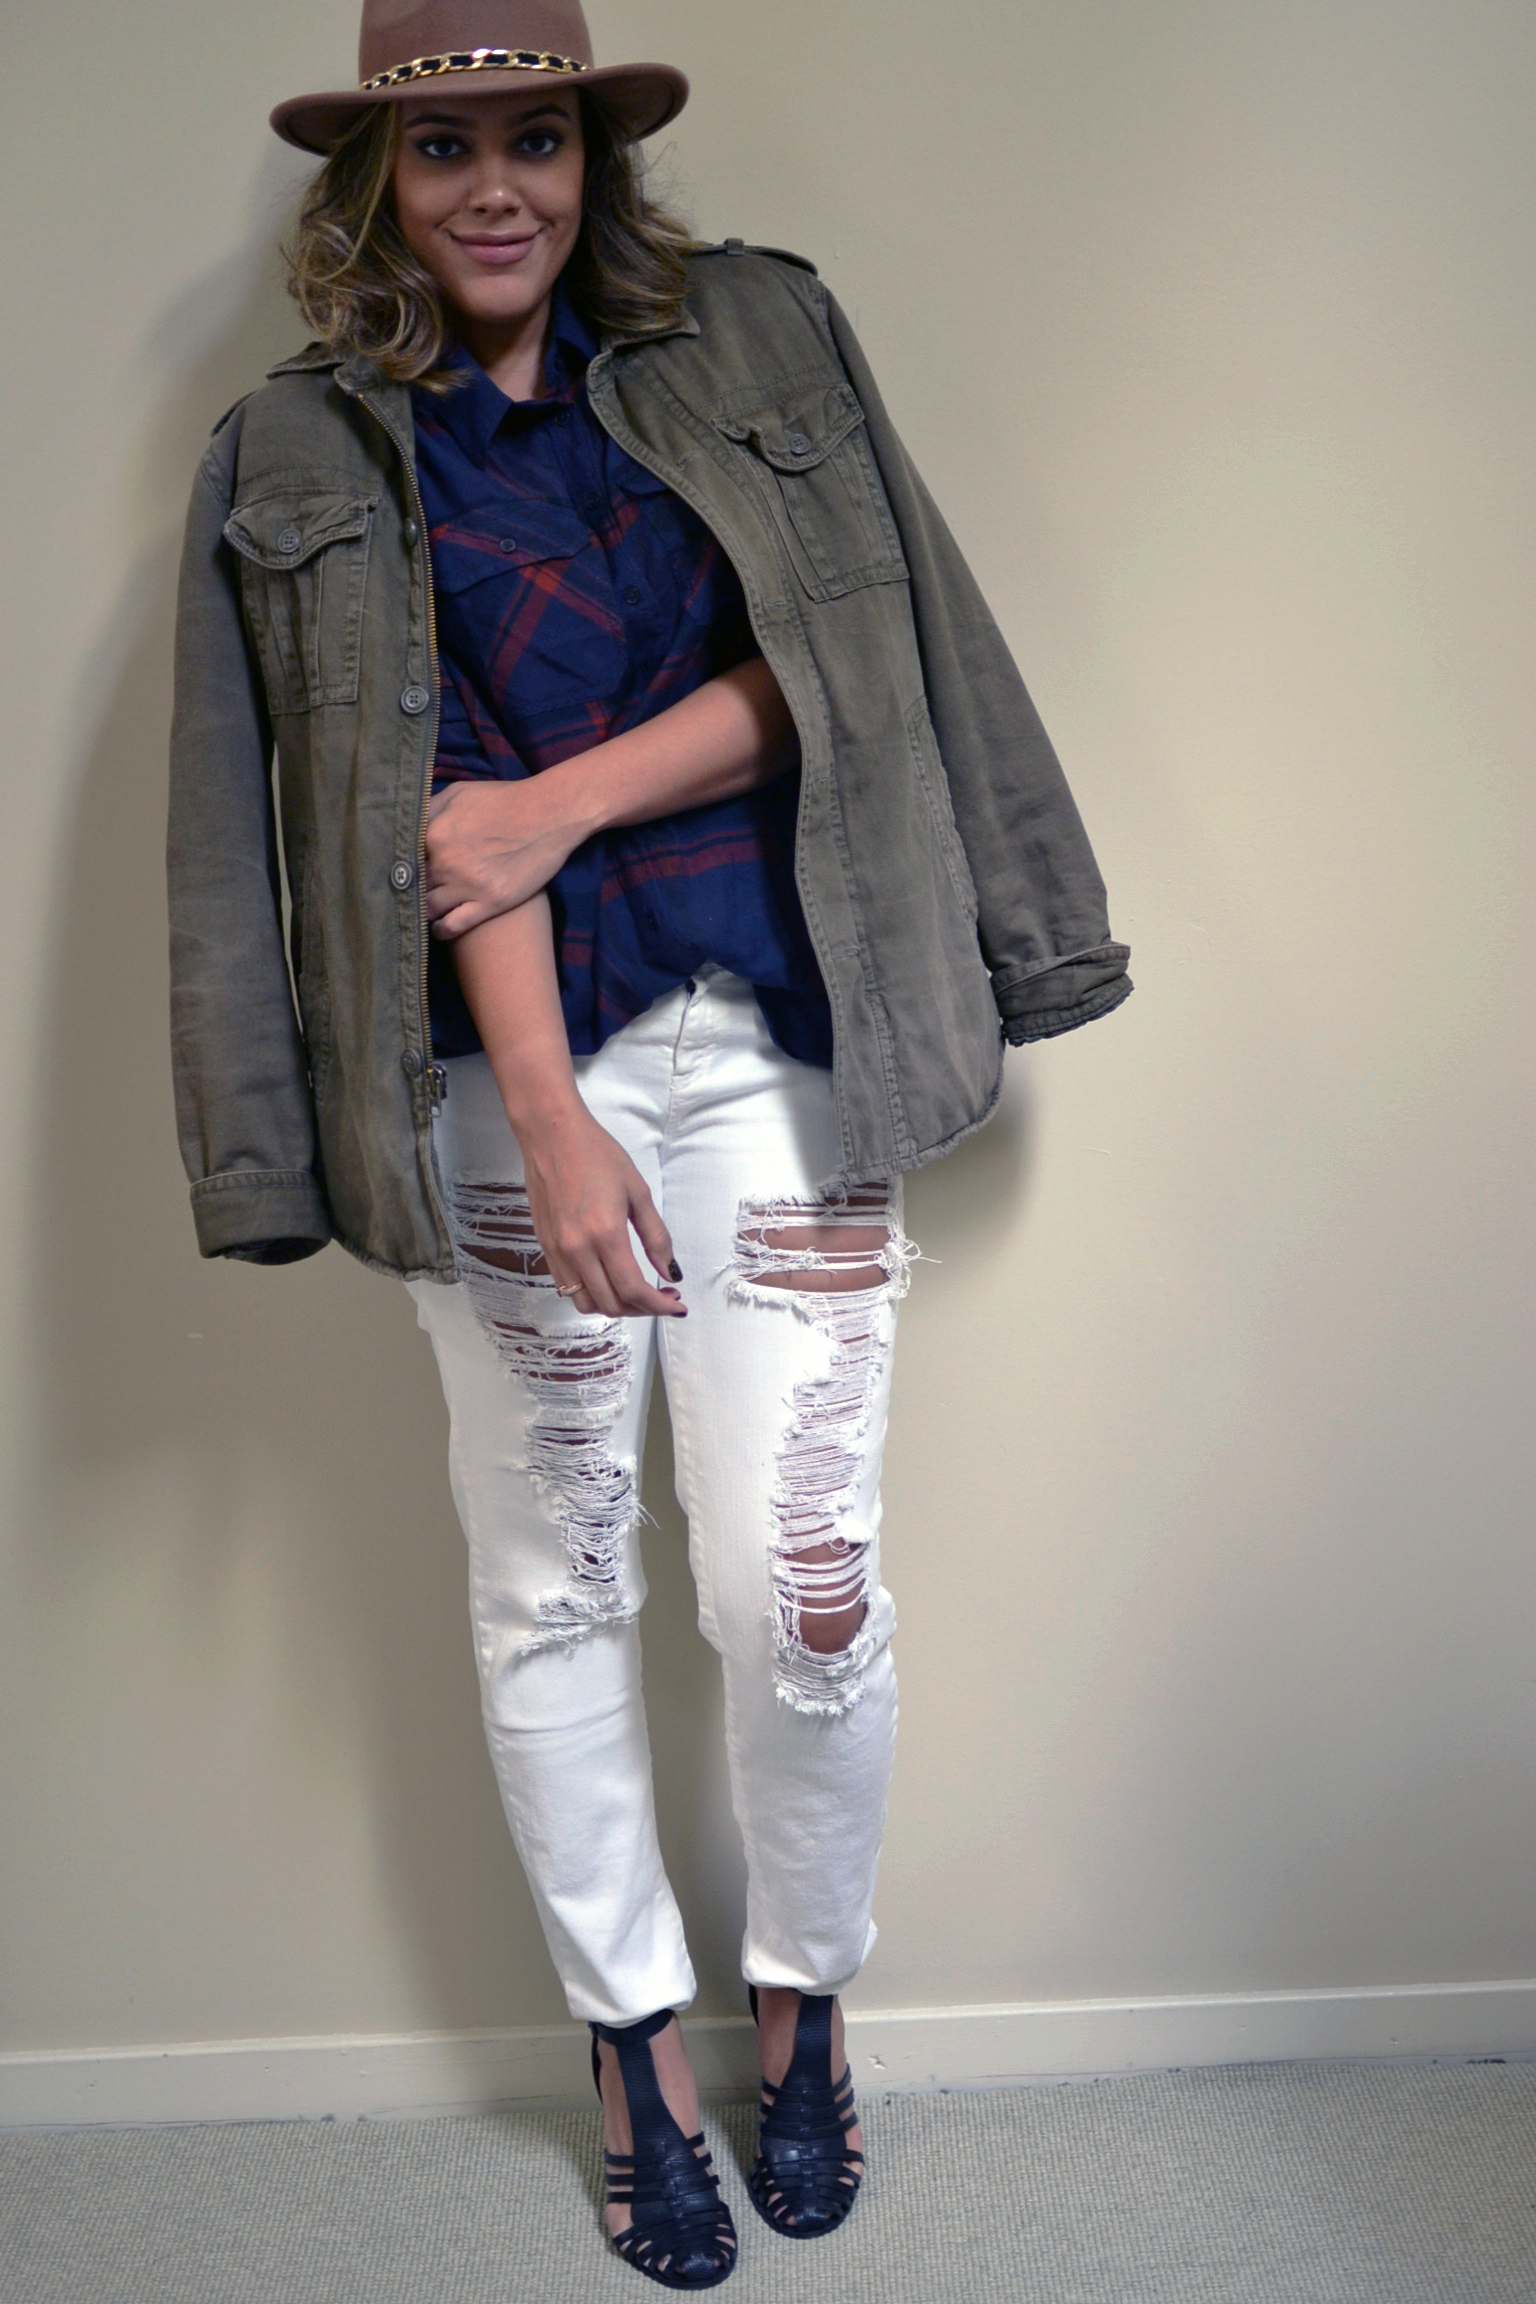 how-to-summer-to-fall-wardrobe-wear-white-jeans-for-fall-zara-jellies-anorak-urban-outfitters-plaid-shirt.jpg